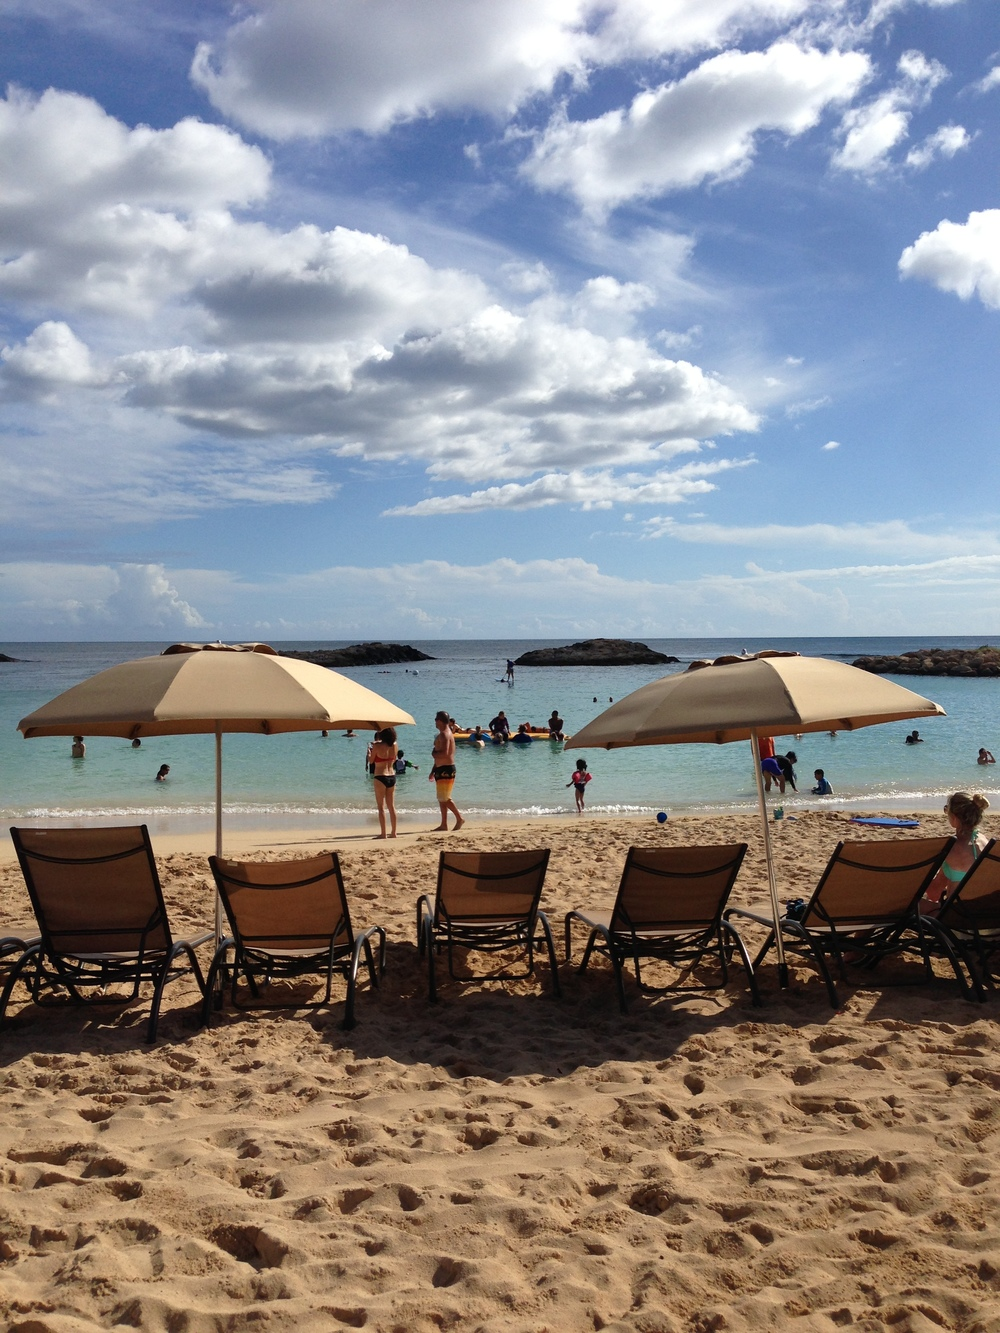 Ko Olina lagoon. Where relaxation itself comes to relax.